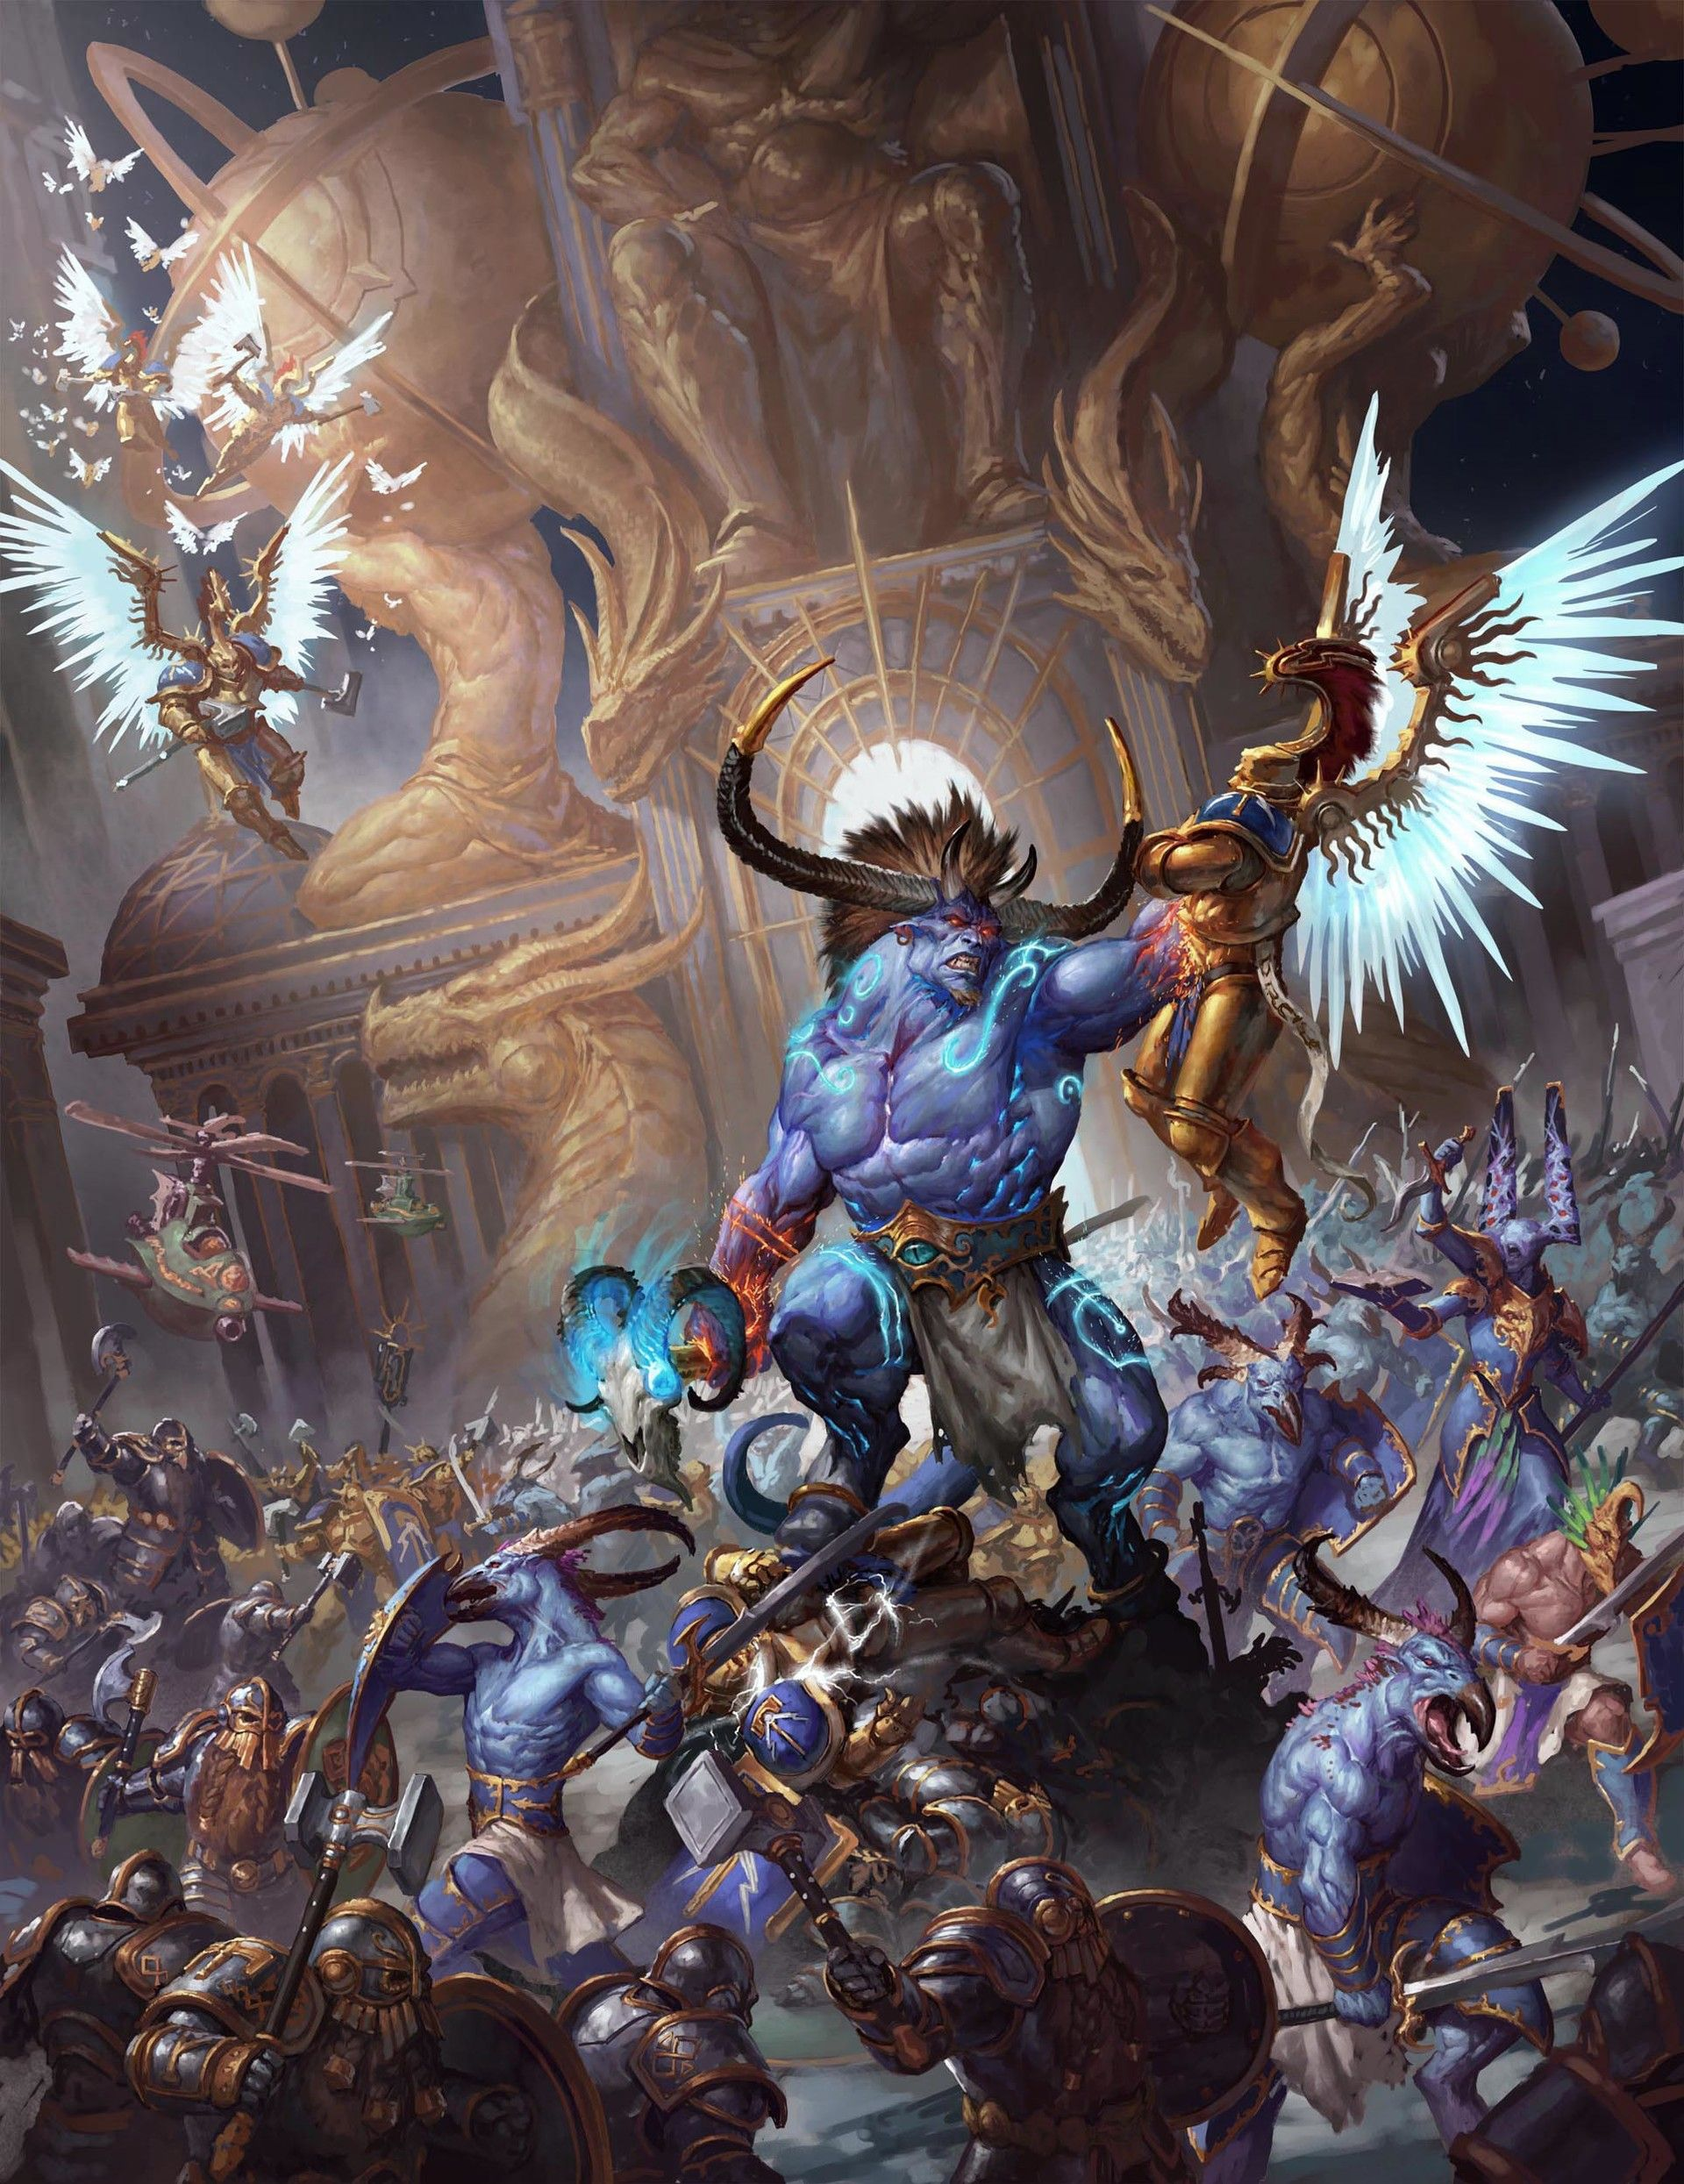 full page opener for the book disciples of tzeentch available very soon ;). I